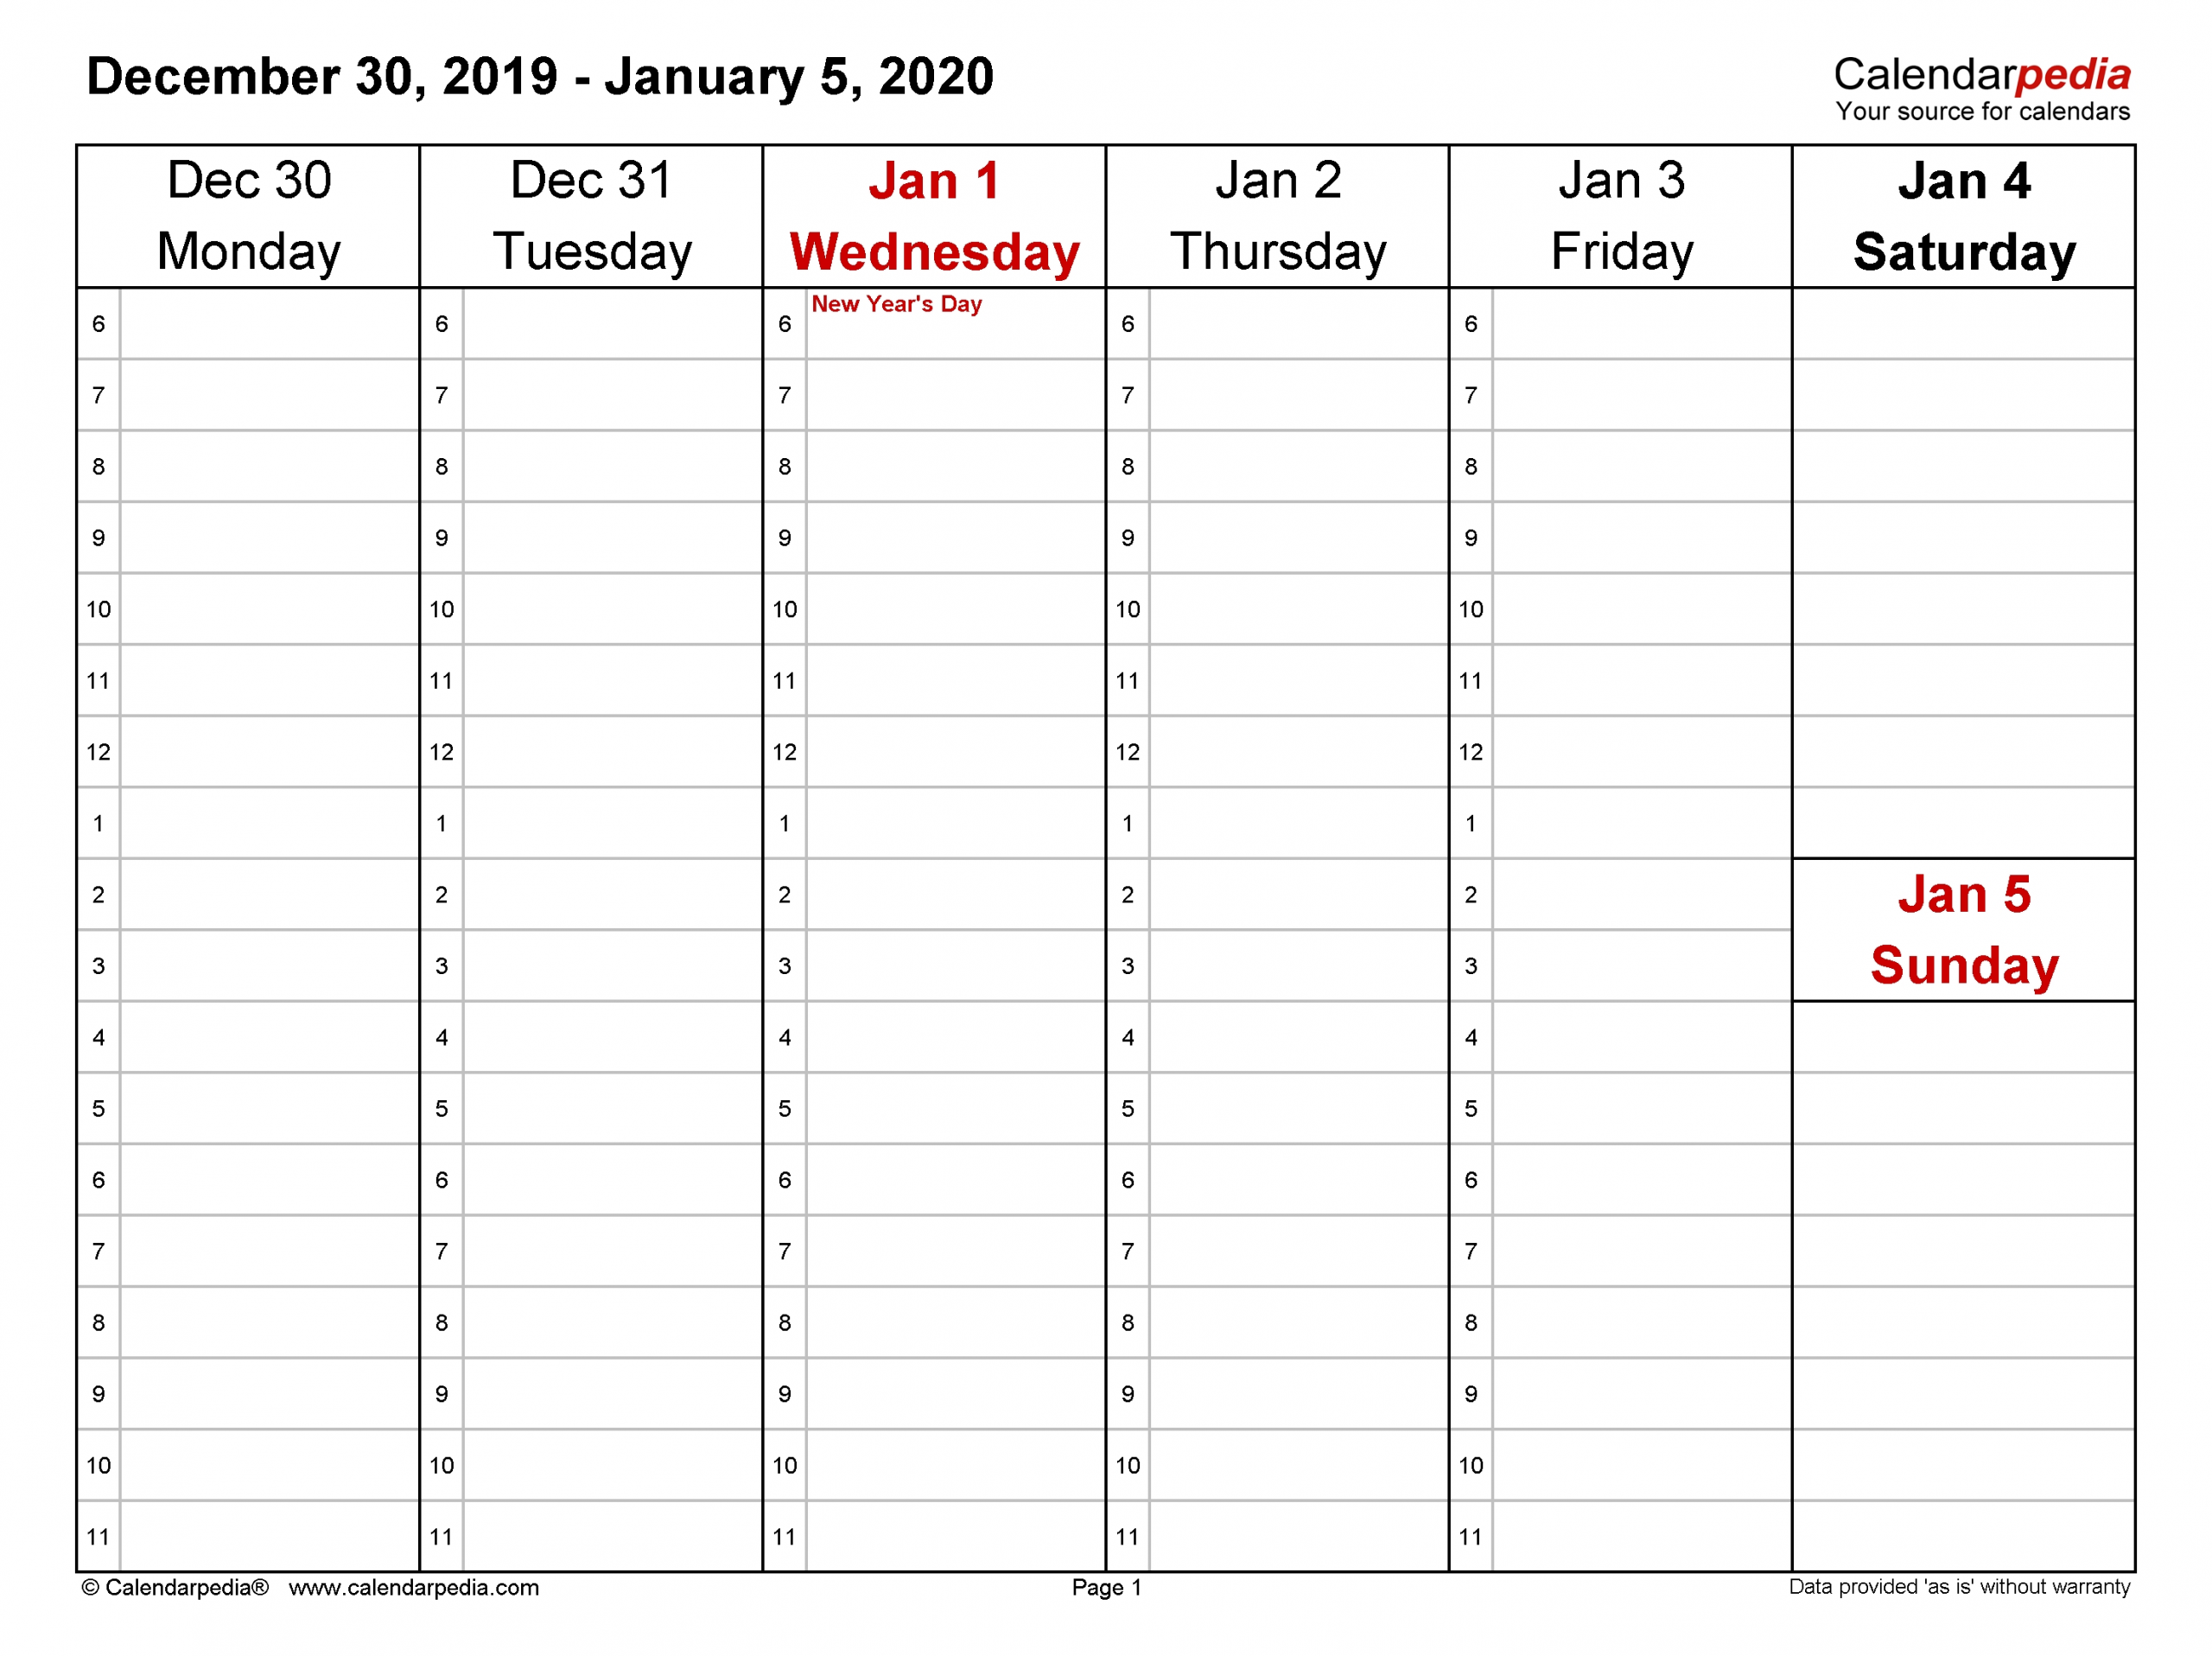 Weekly Calendars 2020 For Word - 12 Free Printable Templates in 2019 2020 Calendar Space To Write